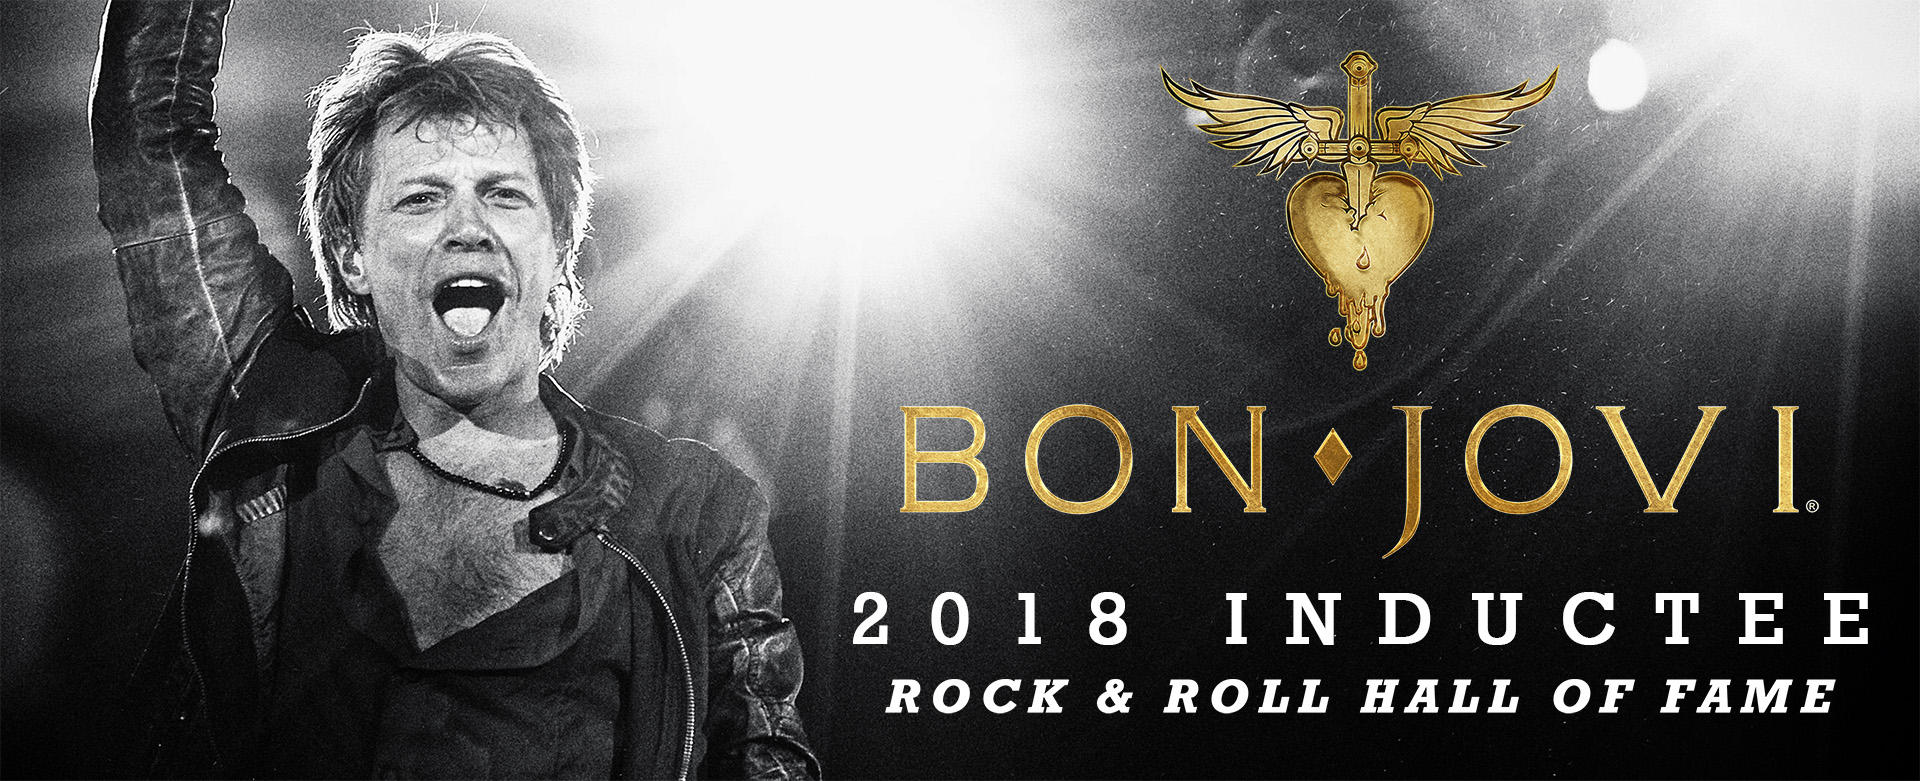 Bon Jovi to be inducted in the Rock and Roll Hall of Fame